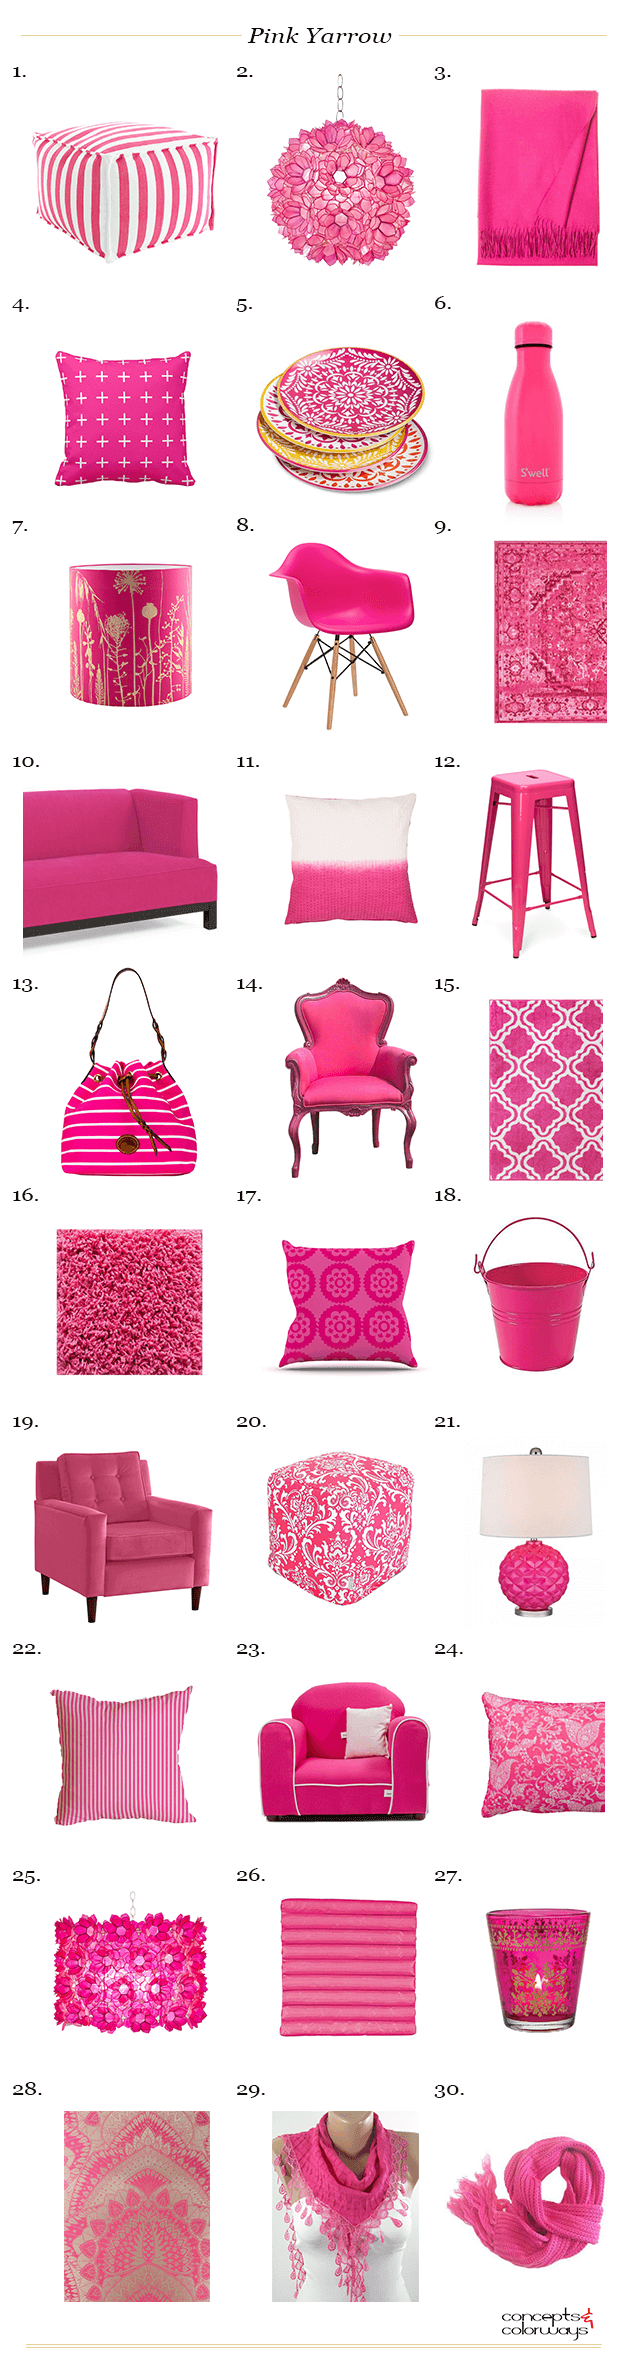 pantone pink yarrow interior product roundup